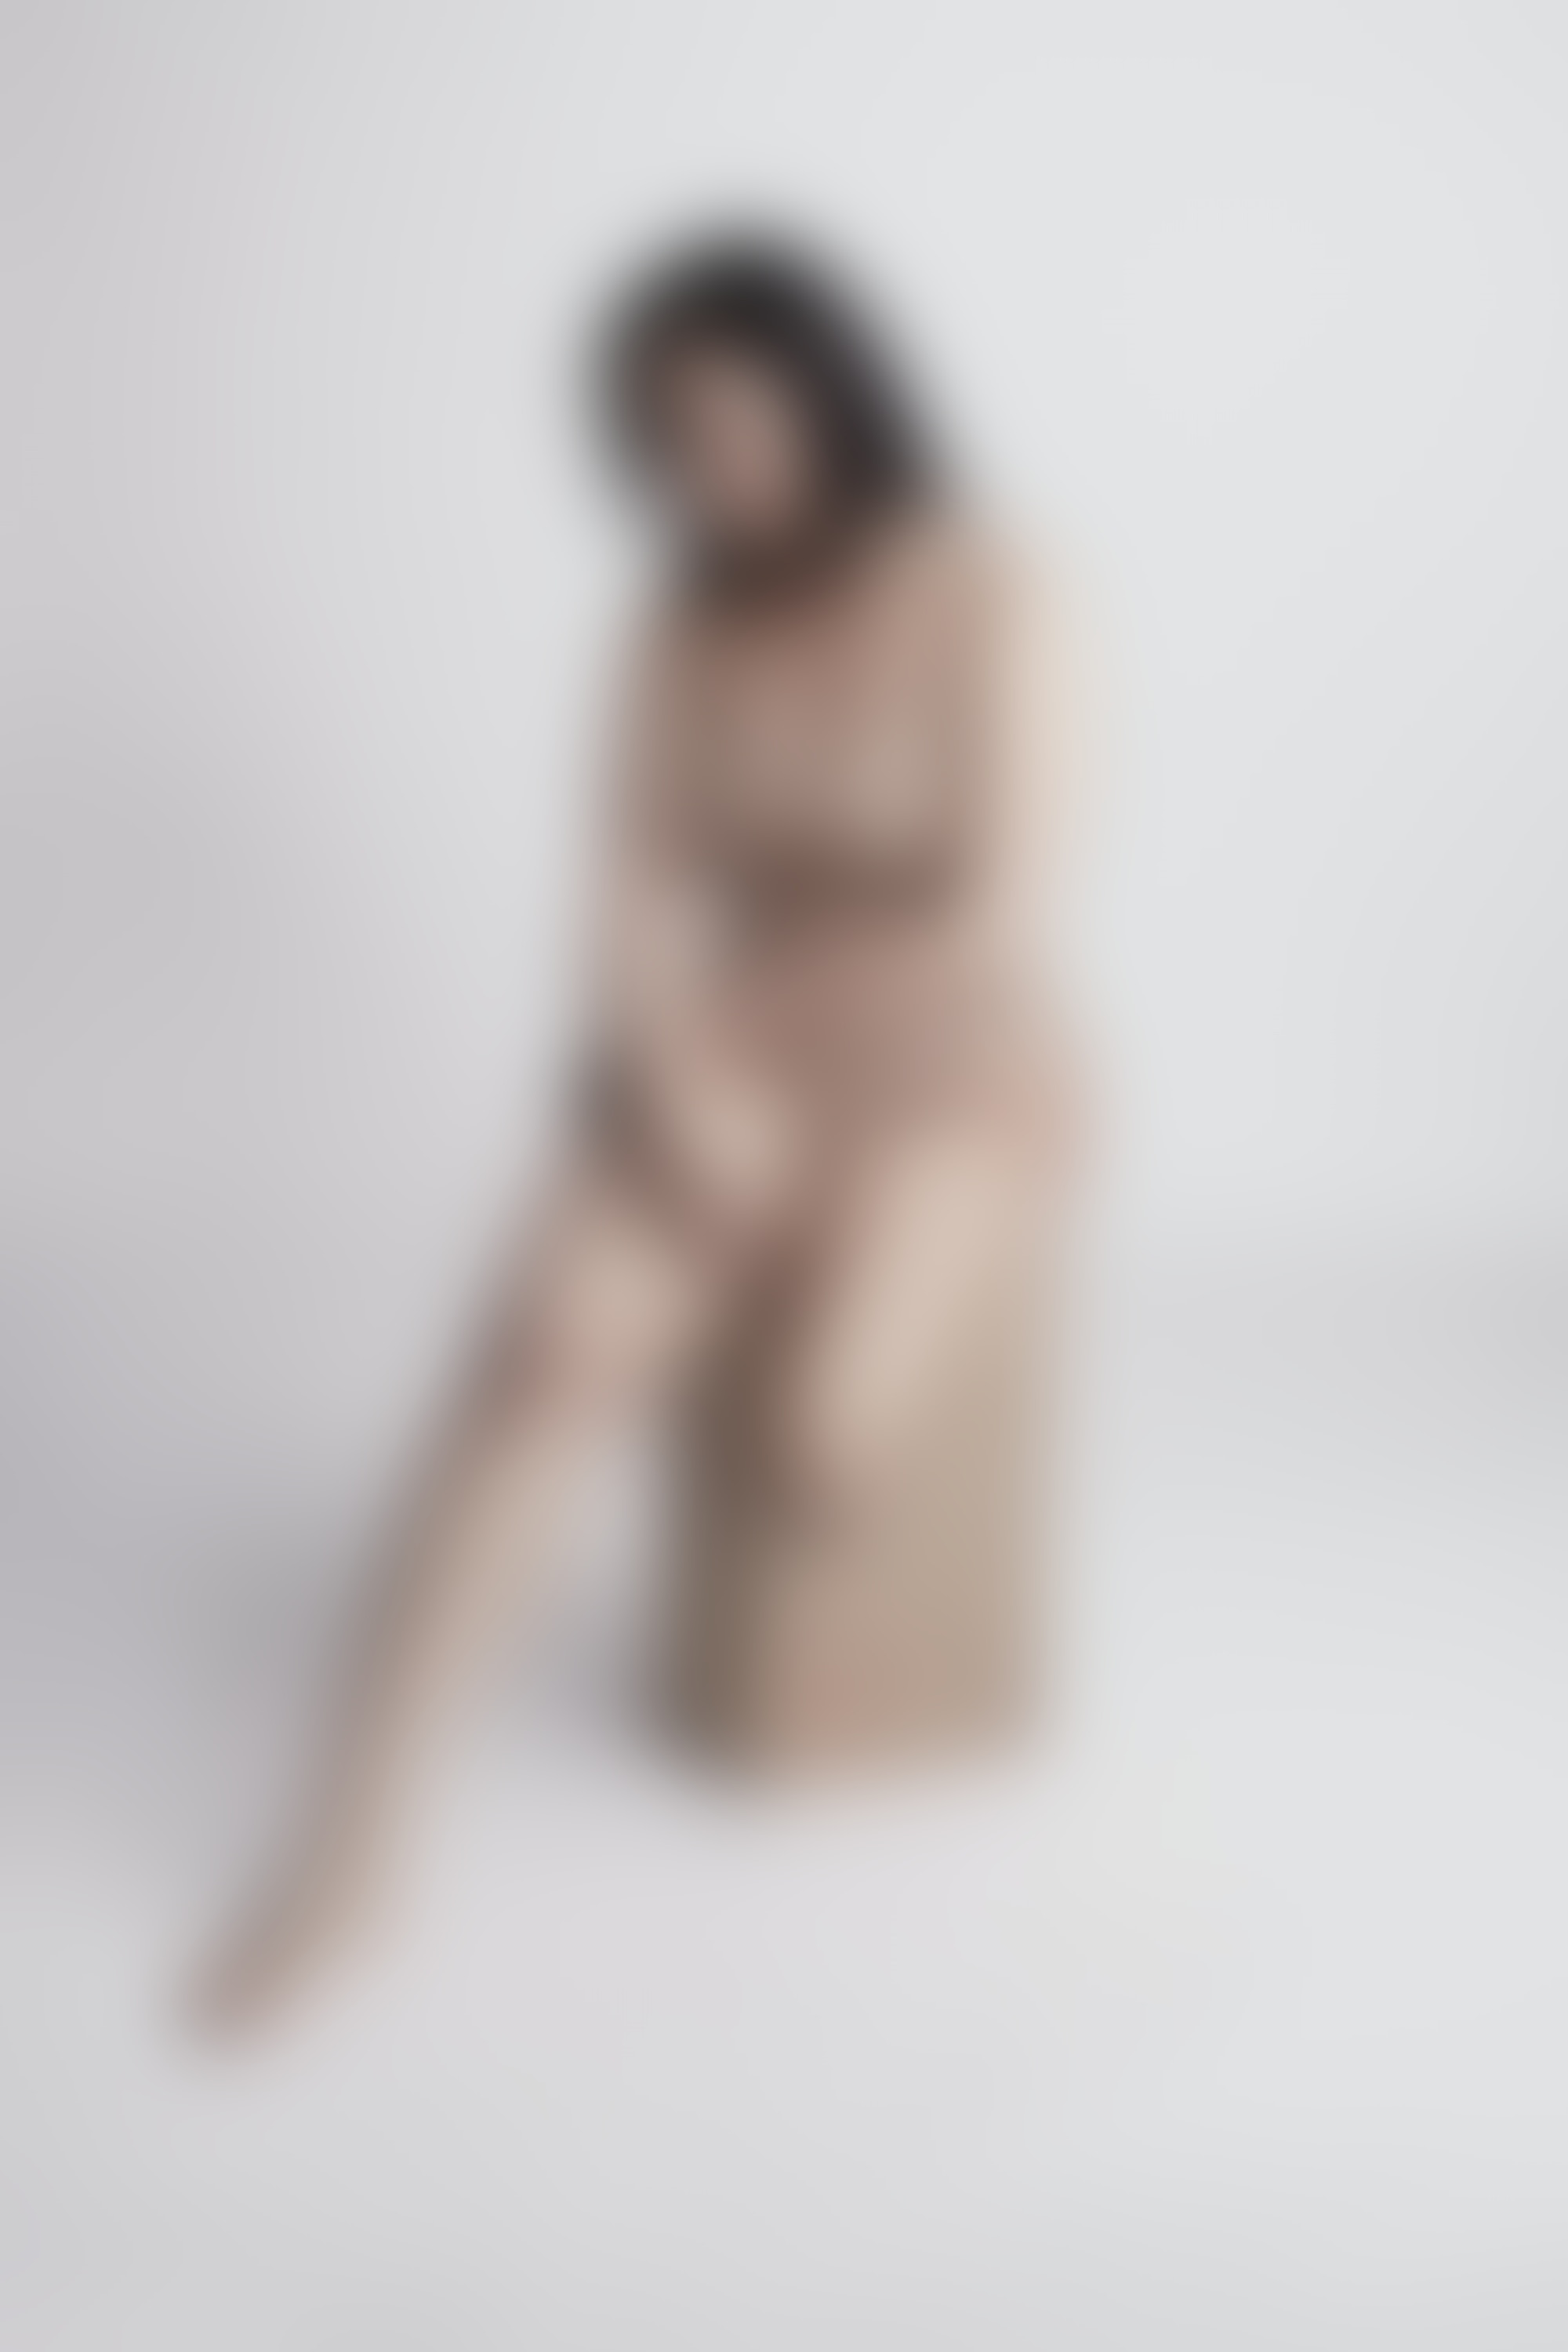 Models with Limb difference in body confidence shoot 5ccbfcaa52b2f 880 autocompressfitresizeixlibphp 1 1 0max h2000max w3 D2000q80sfa2f701b16dac0c6ecdc6eba6d4c4a43